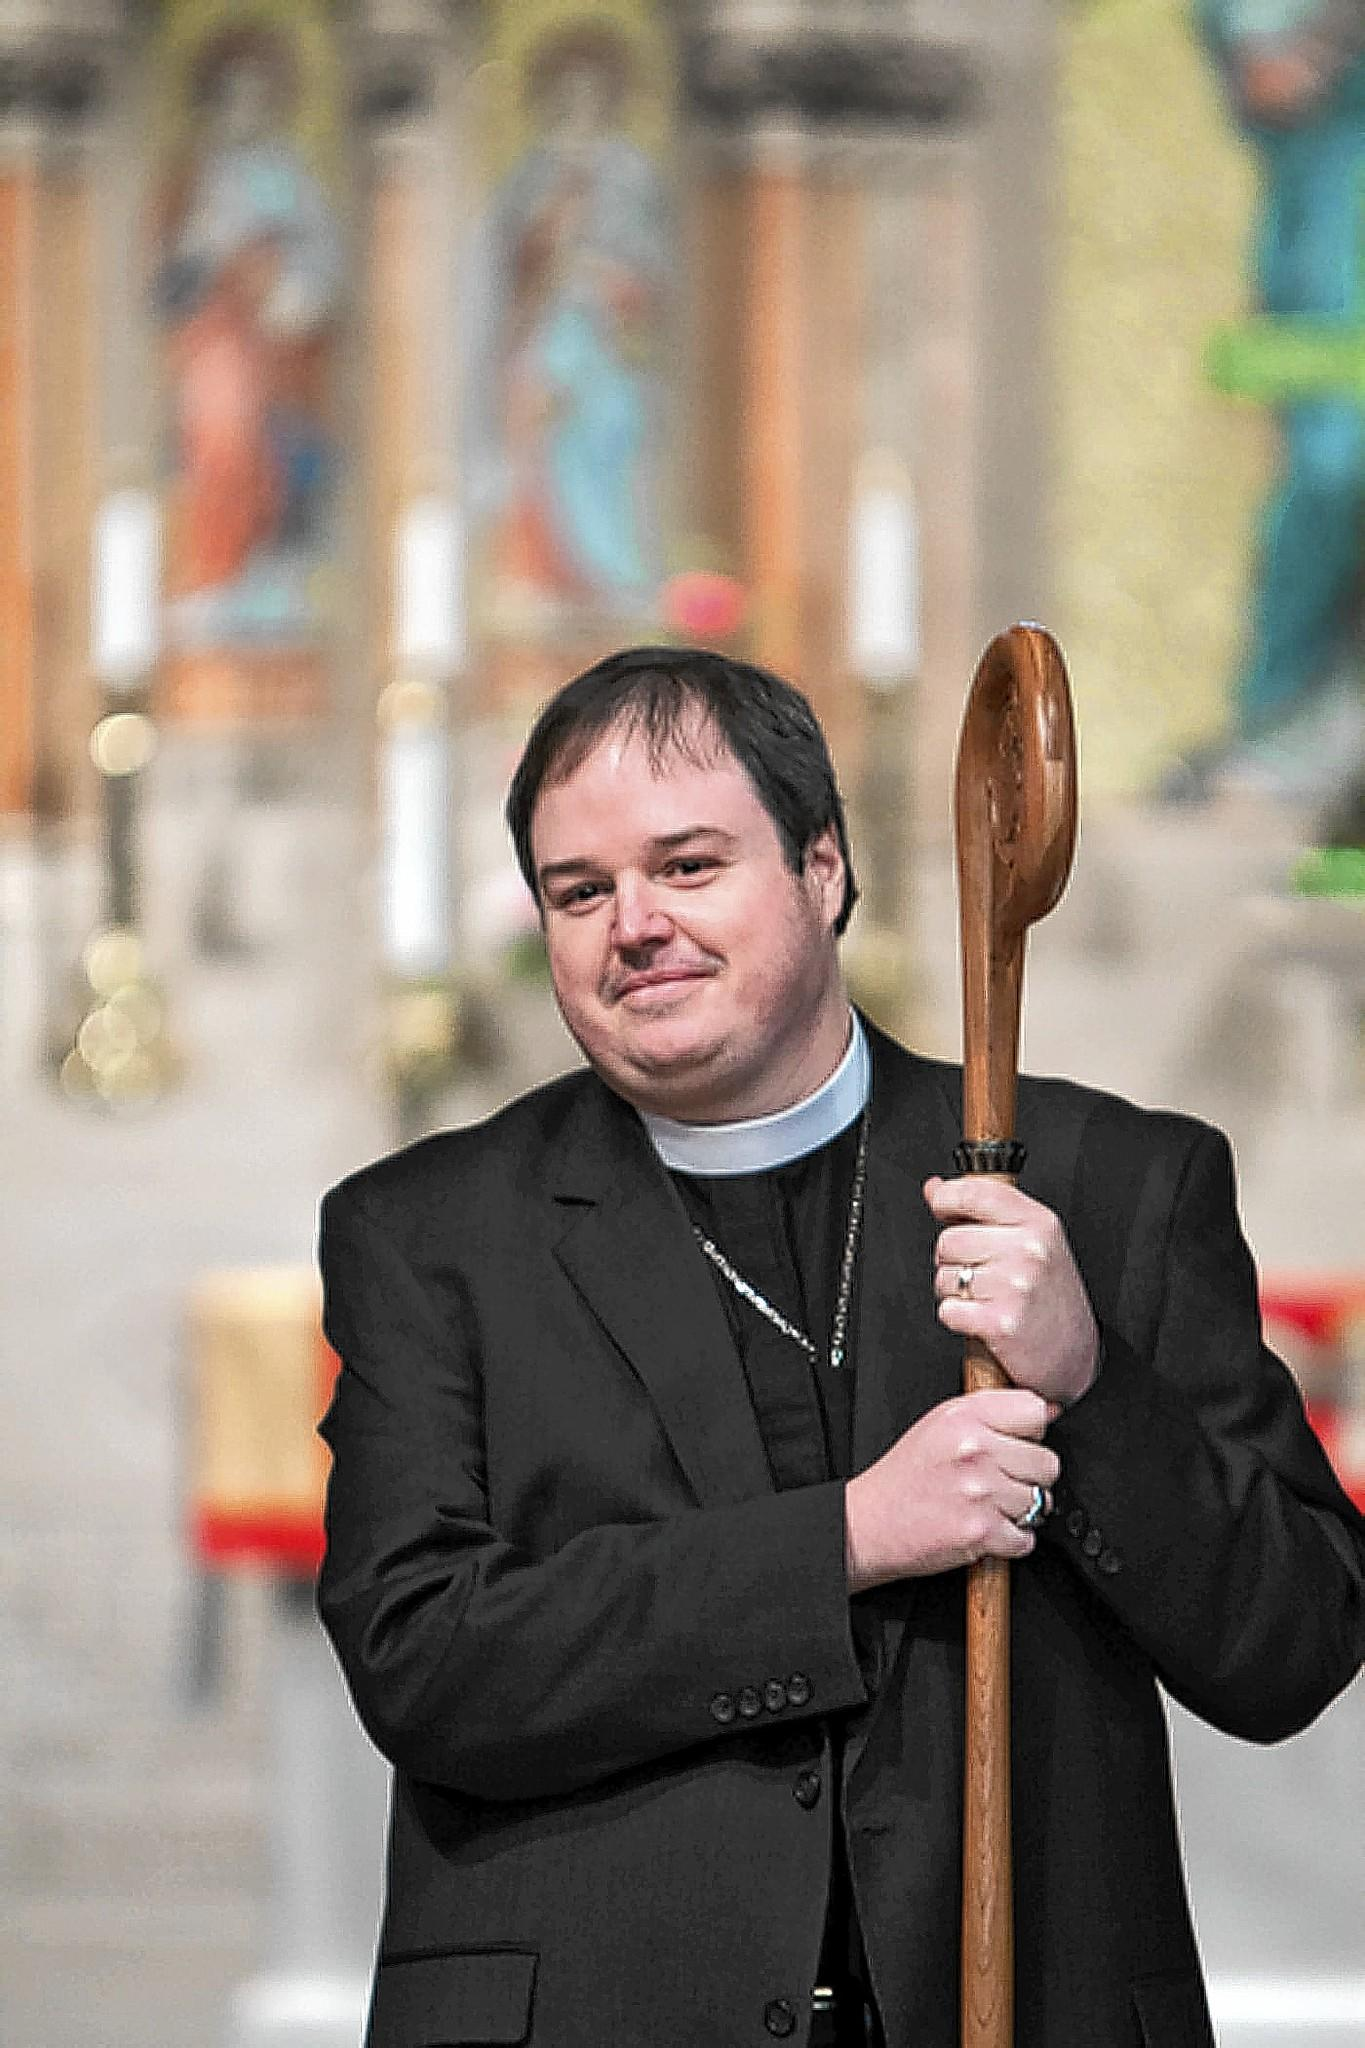 The Rt. Rev. Sean Rowe has been elected provisional bishop of the Episcopal Diocese of Bethlehem.